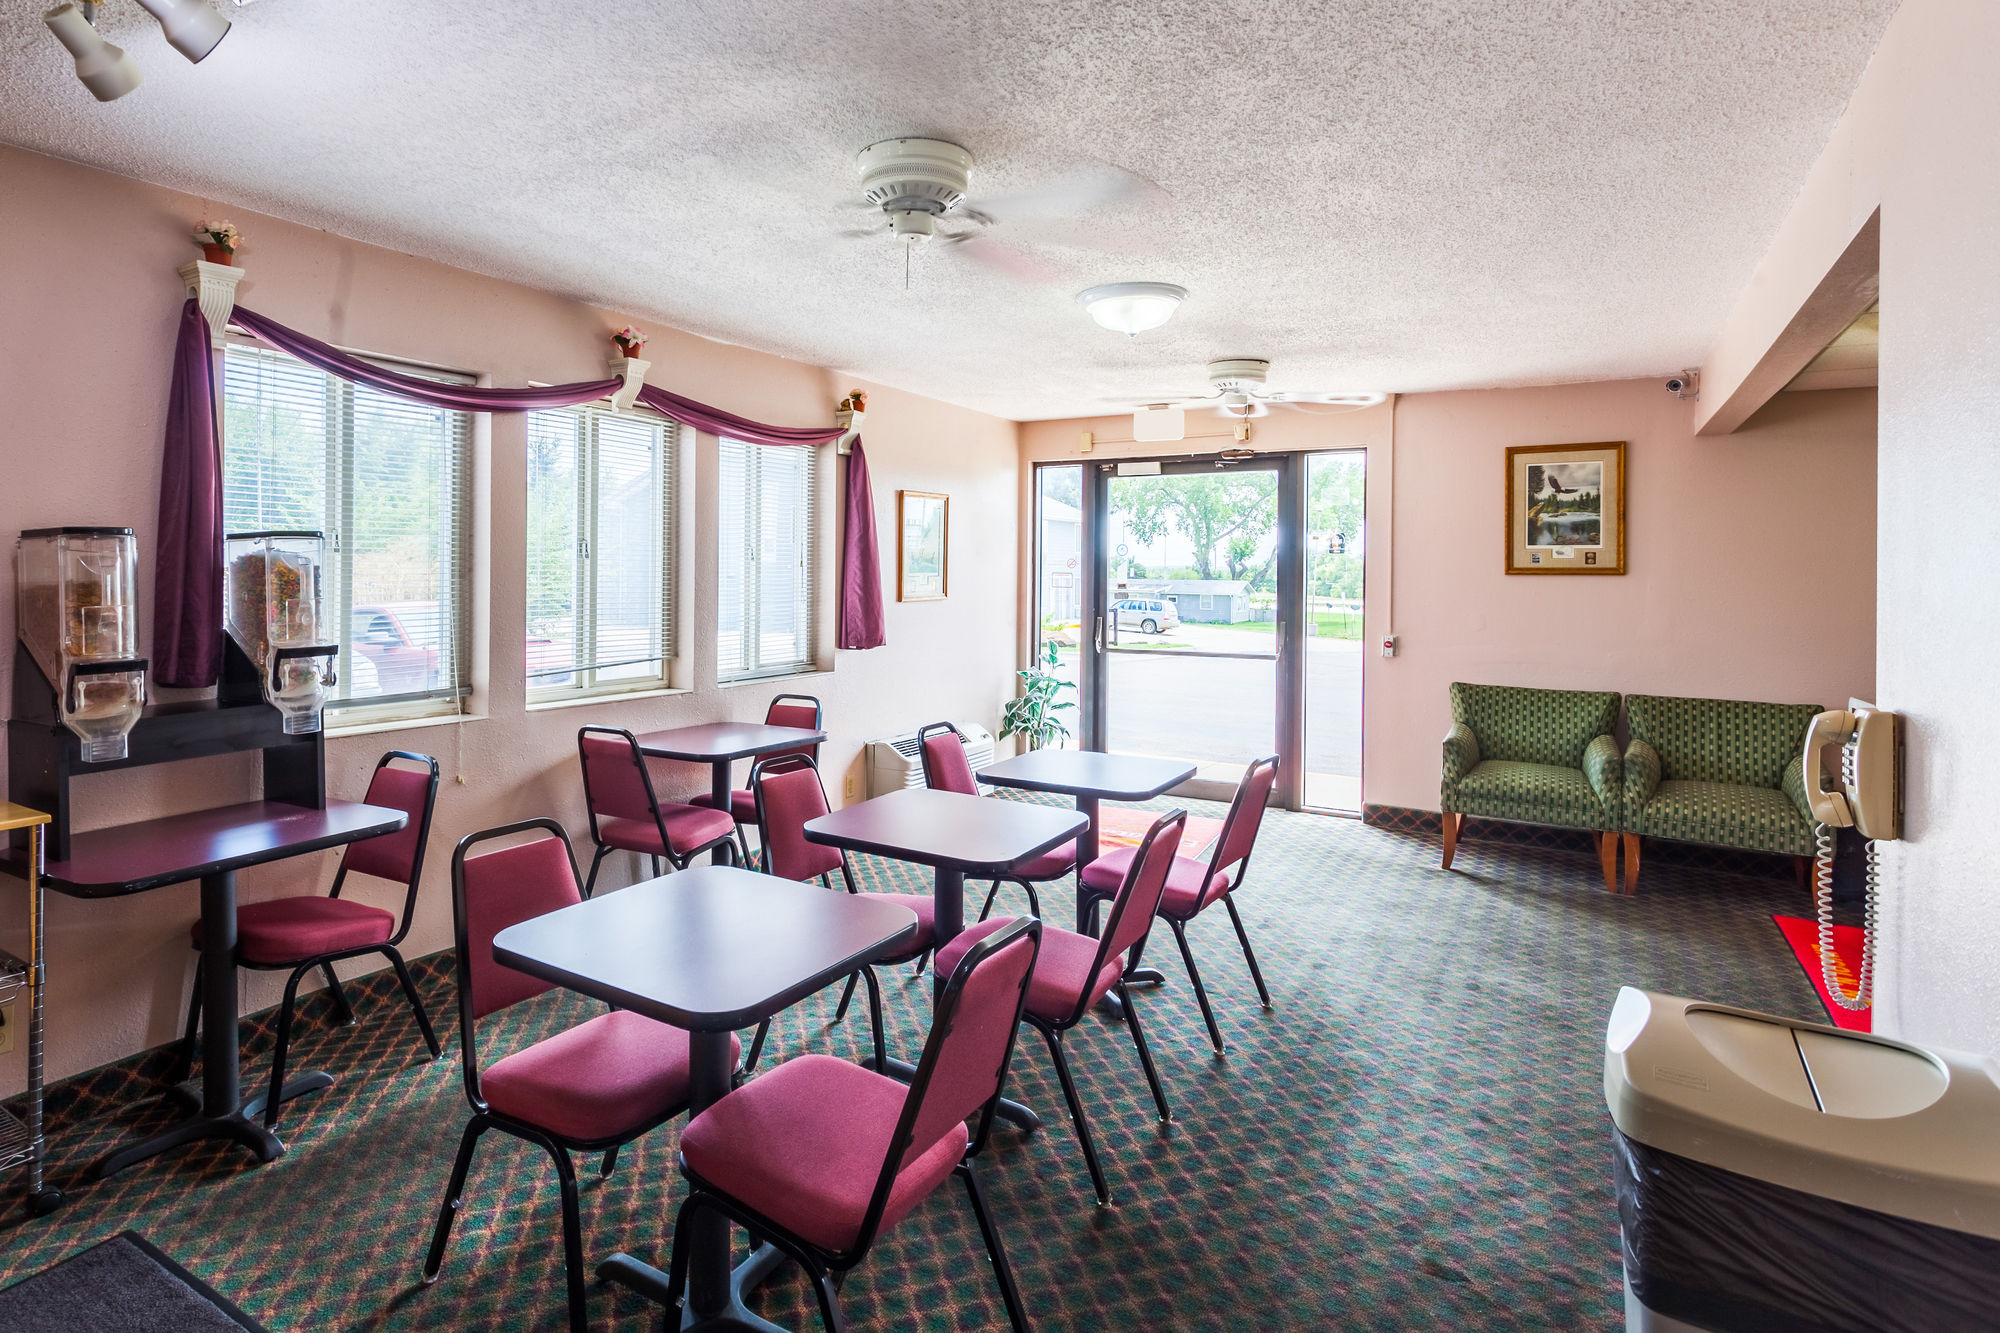 hotel suites extended hoteldetail candlewood en lincoln us hotels stay airport ne omaad omaha